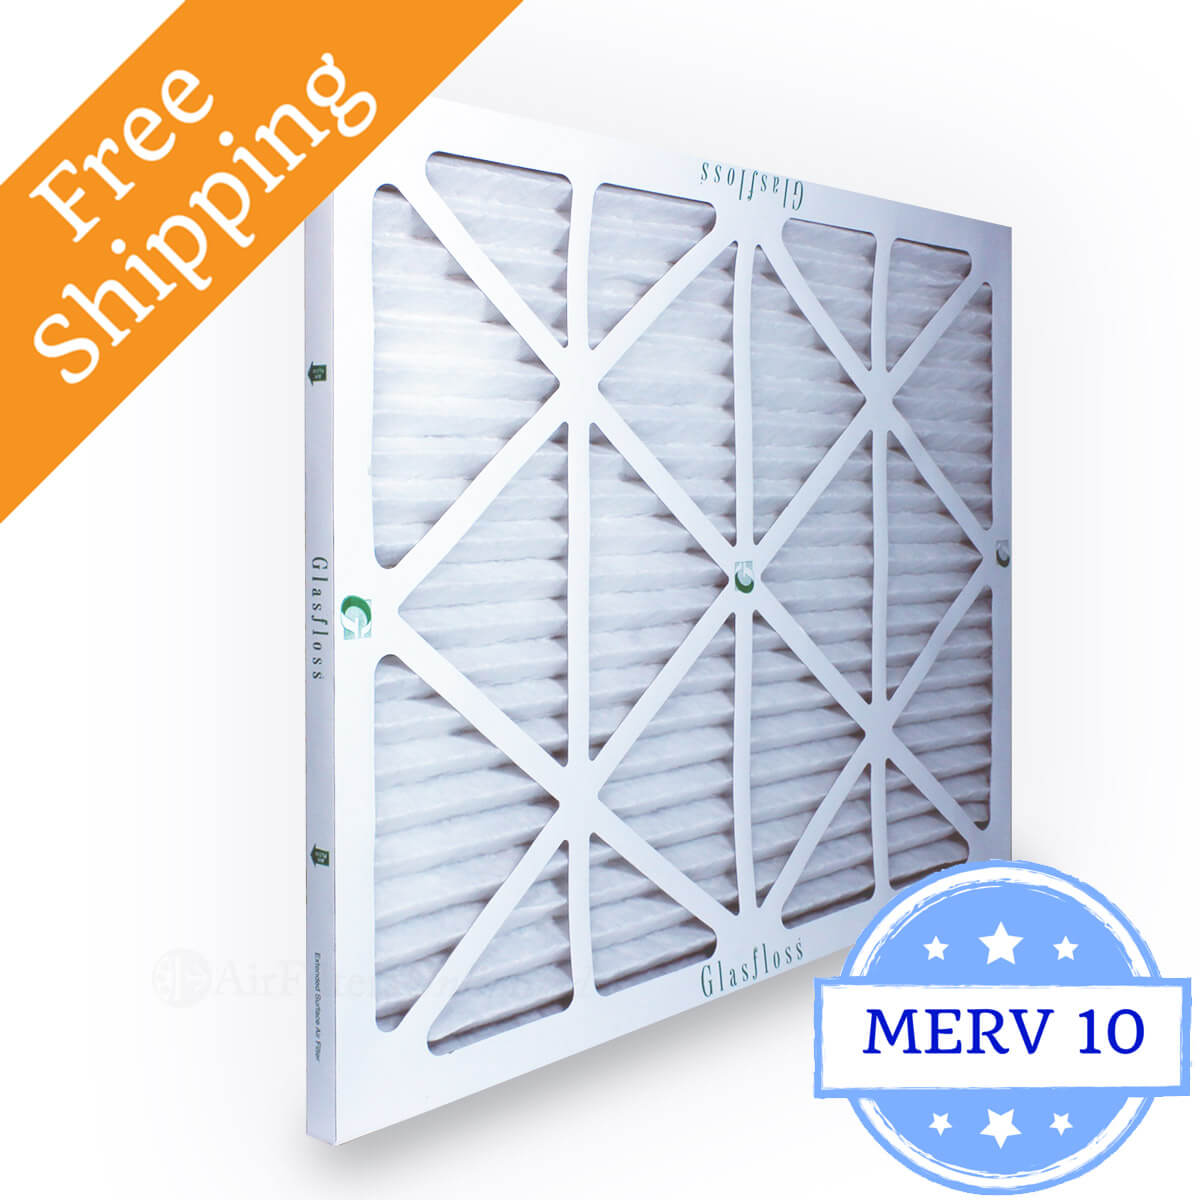 Glasfloss 20x25x1 Air Filter ZL Series